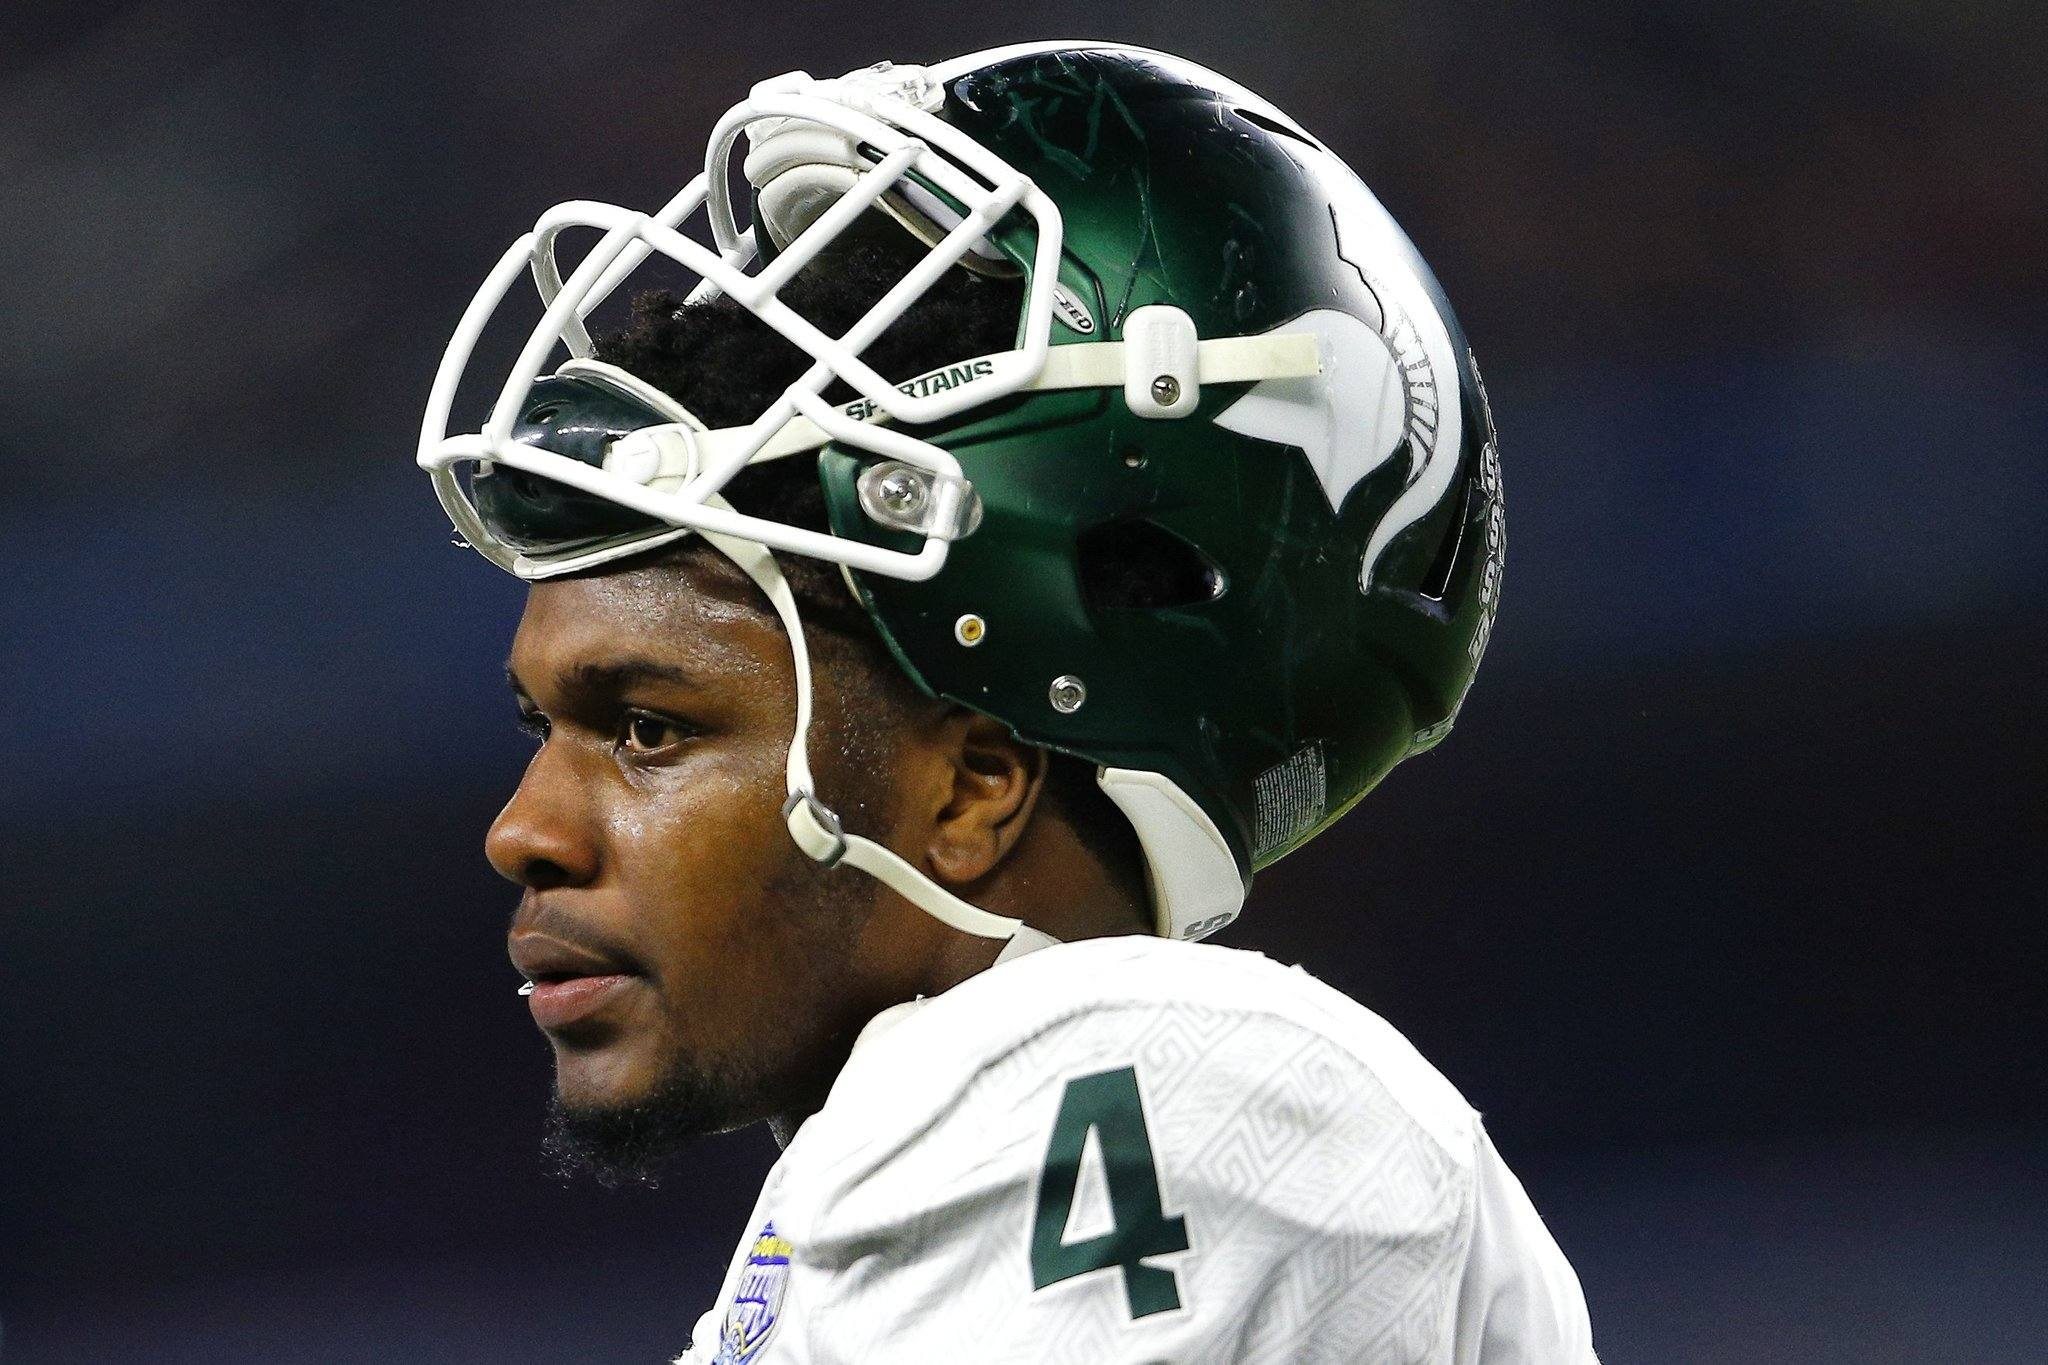 Cowboys Draft: Is Michigan State's Malik McDowell Worth the Risk for Dallas? 1